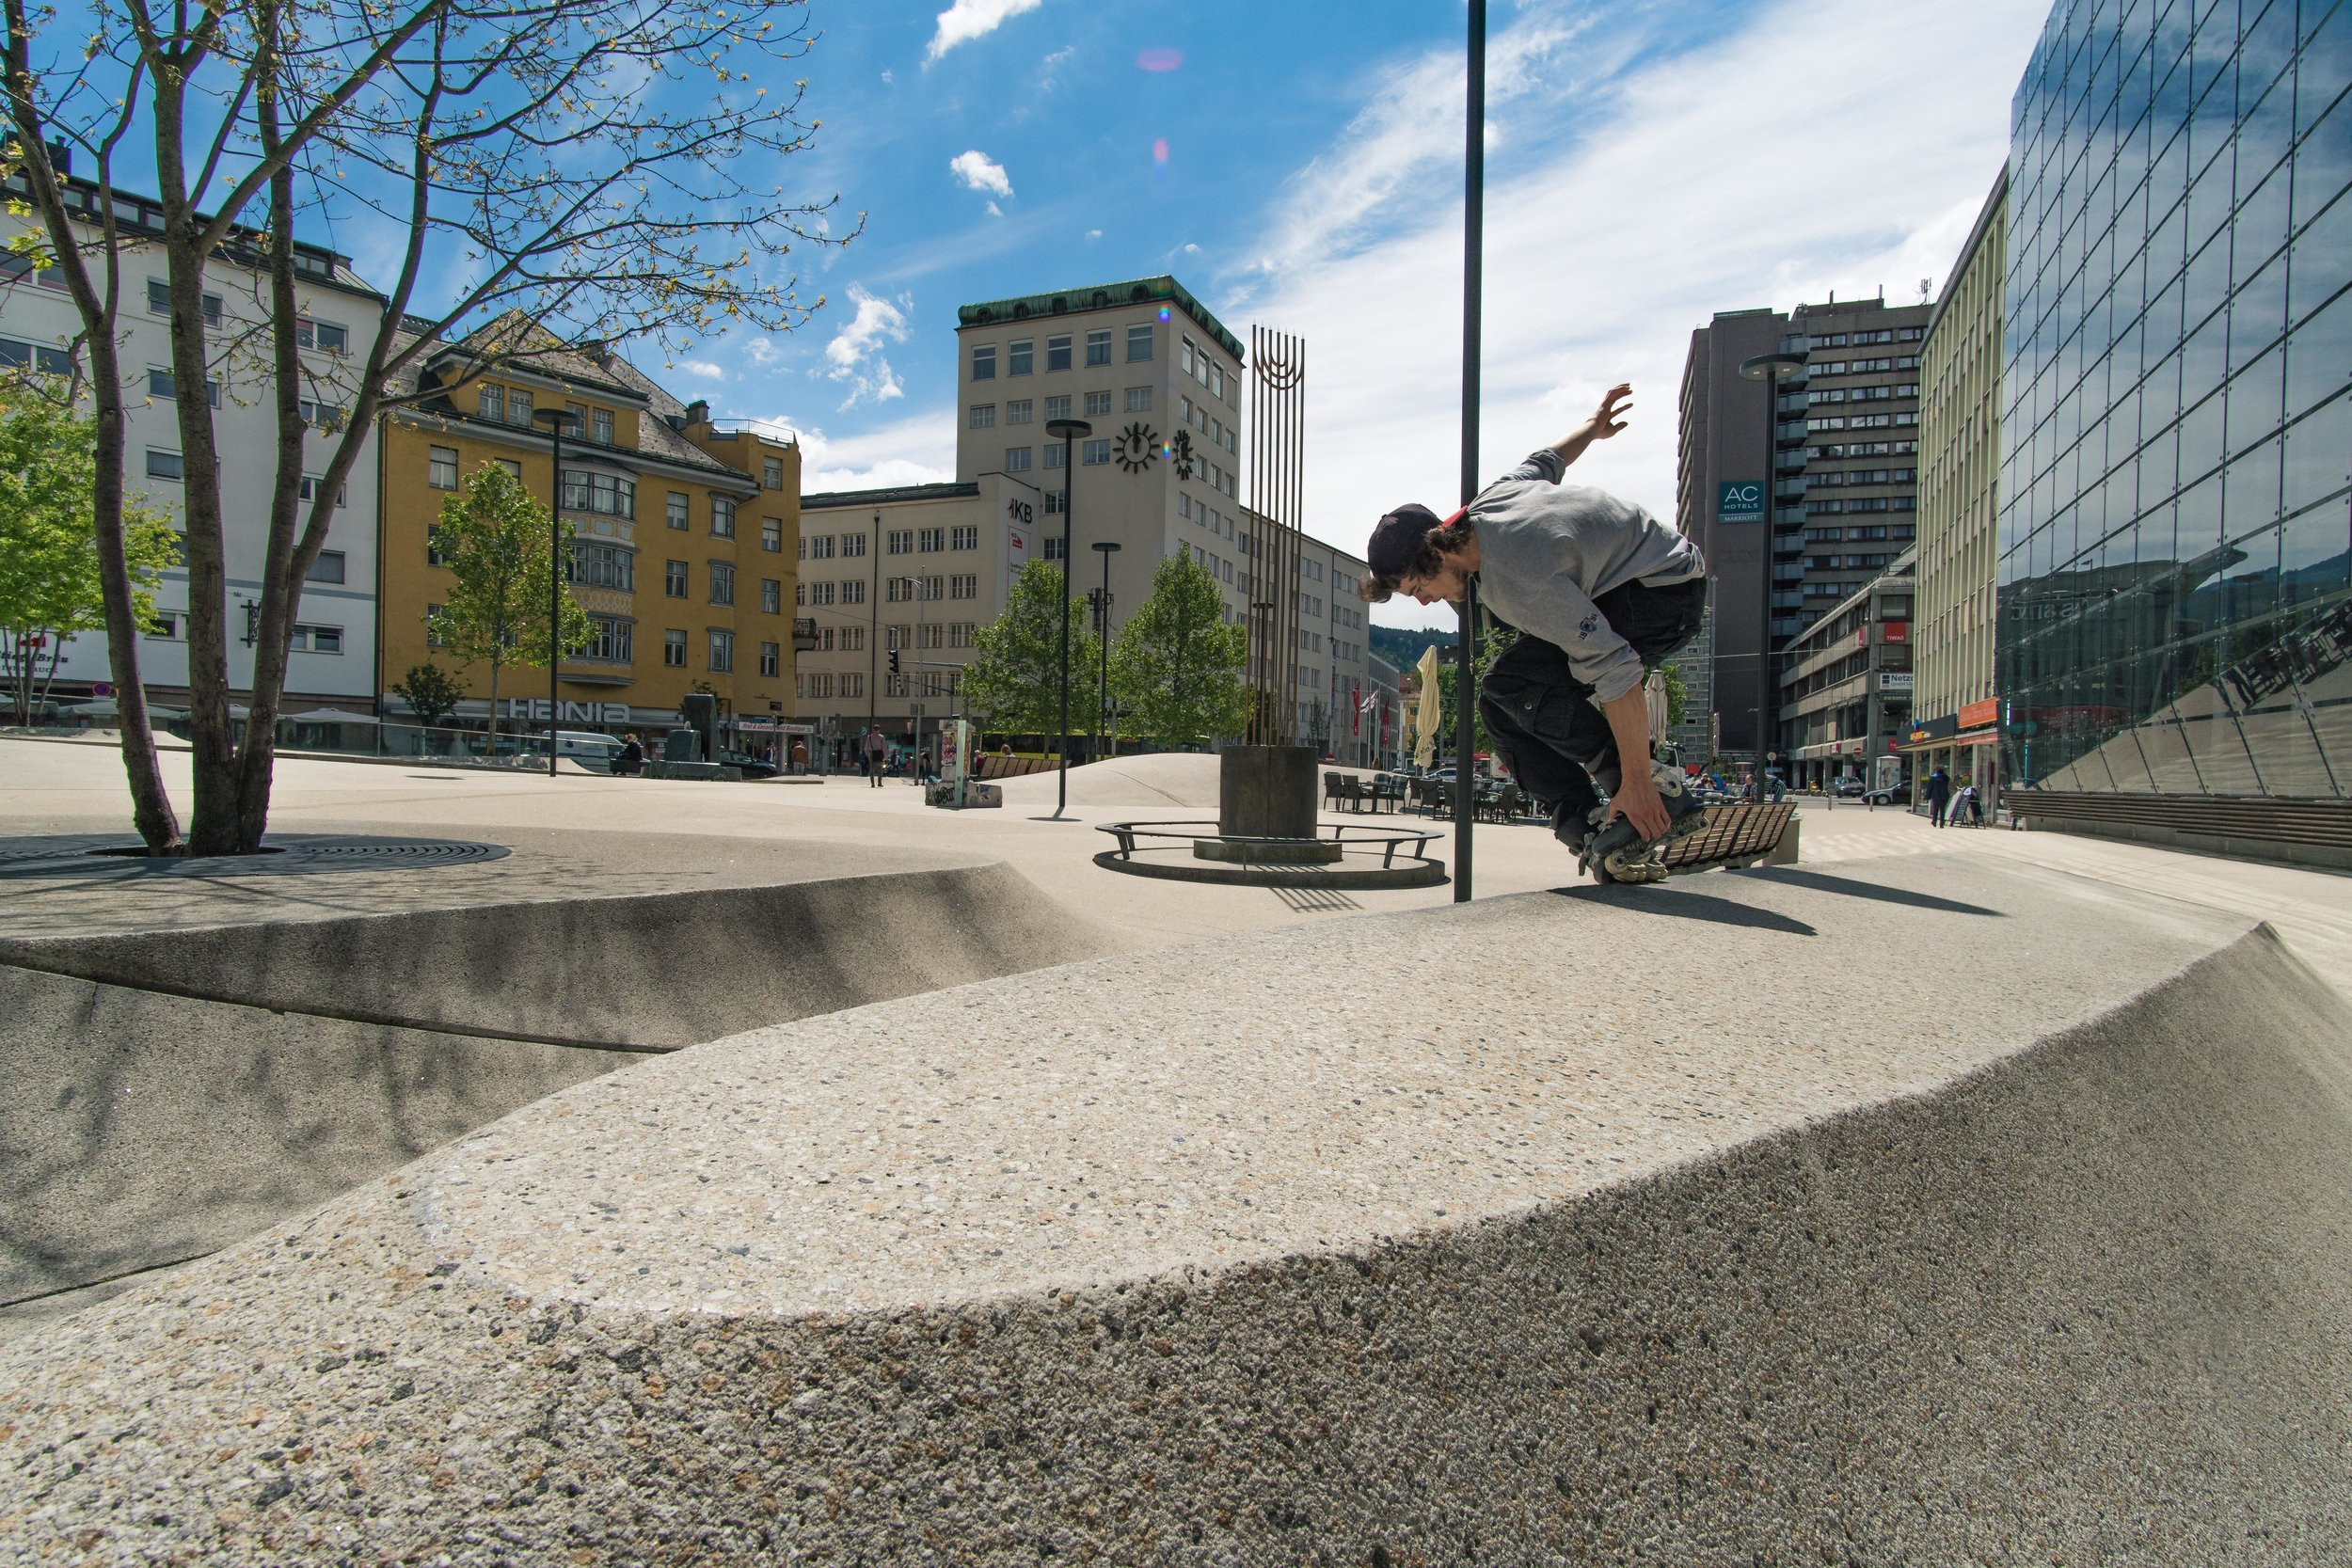 Michael Witzemann - Birthday - 13 December 1996Hometown - Feldkirch, AustriaCurrent residence - Feldkirch, AustriaSponsors - Bladelife Clothing, SkateSolution, RemzFavorite section of all time - Chris Haffey - Killer BootsFavorite skater of all time - Sean Kelso, Billy O'Neil, Danny BeerFavorite activities outside skating - Anything that challenges me mentally, pretty much into bouldering right now.